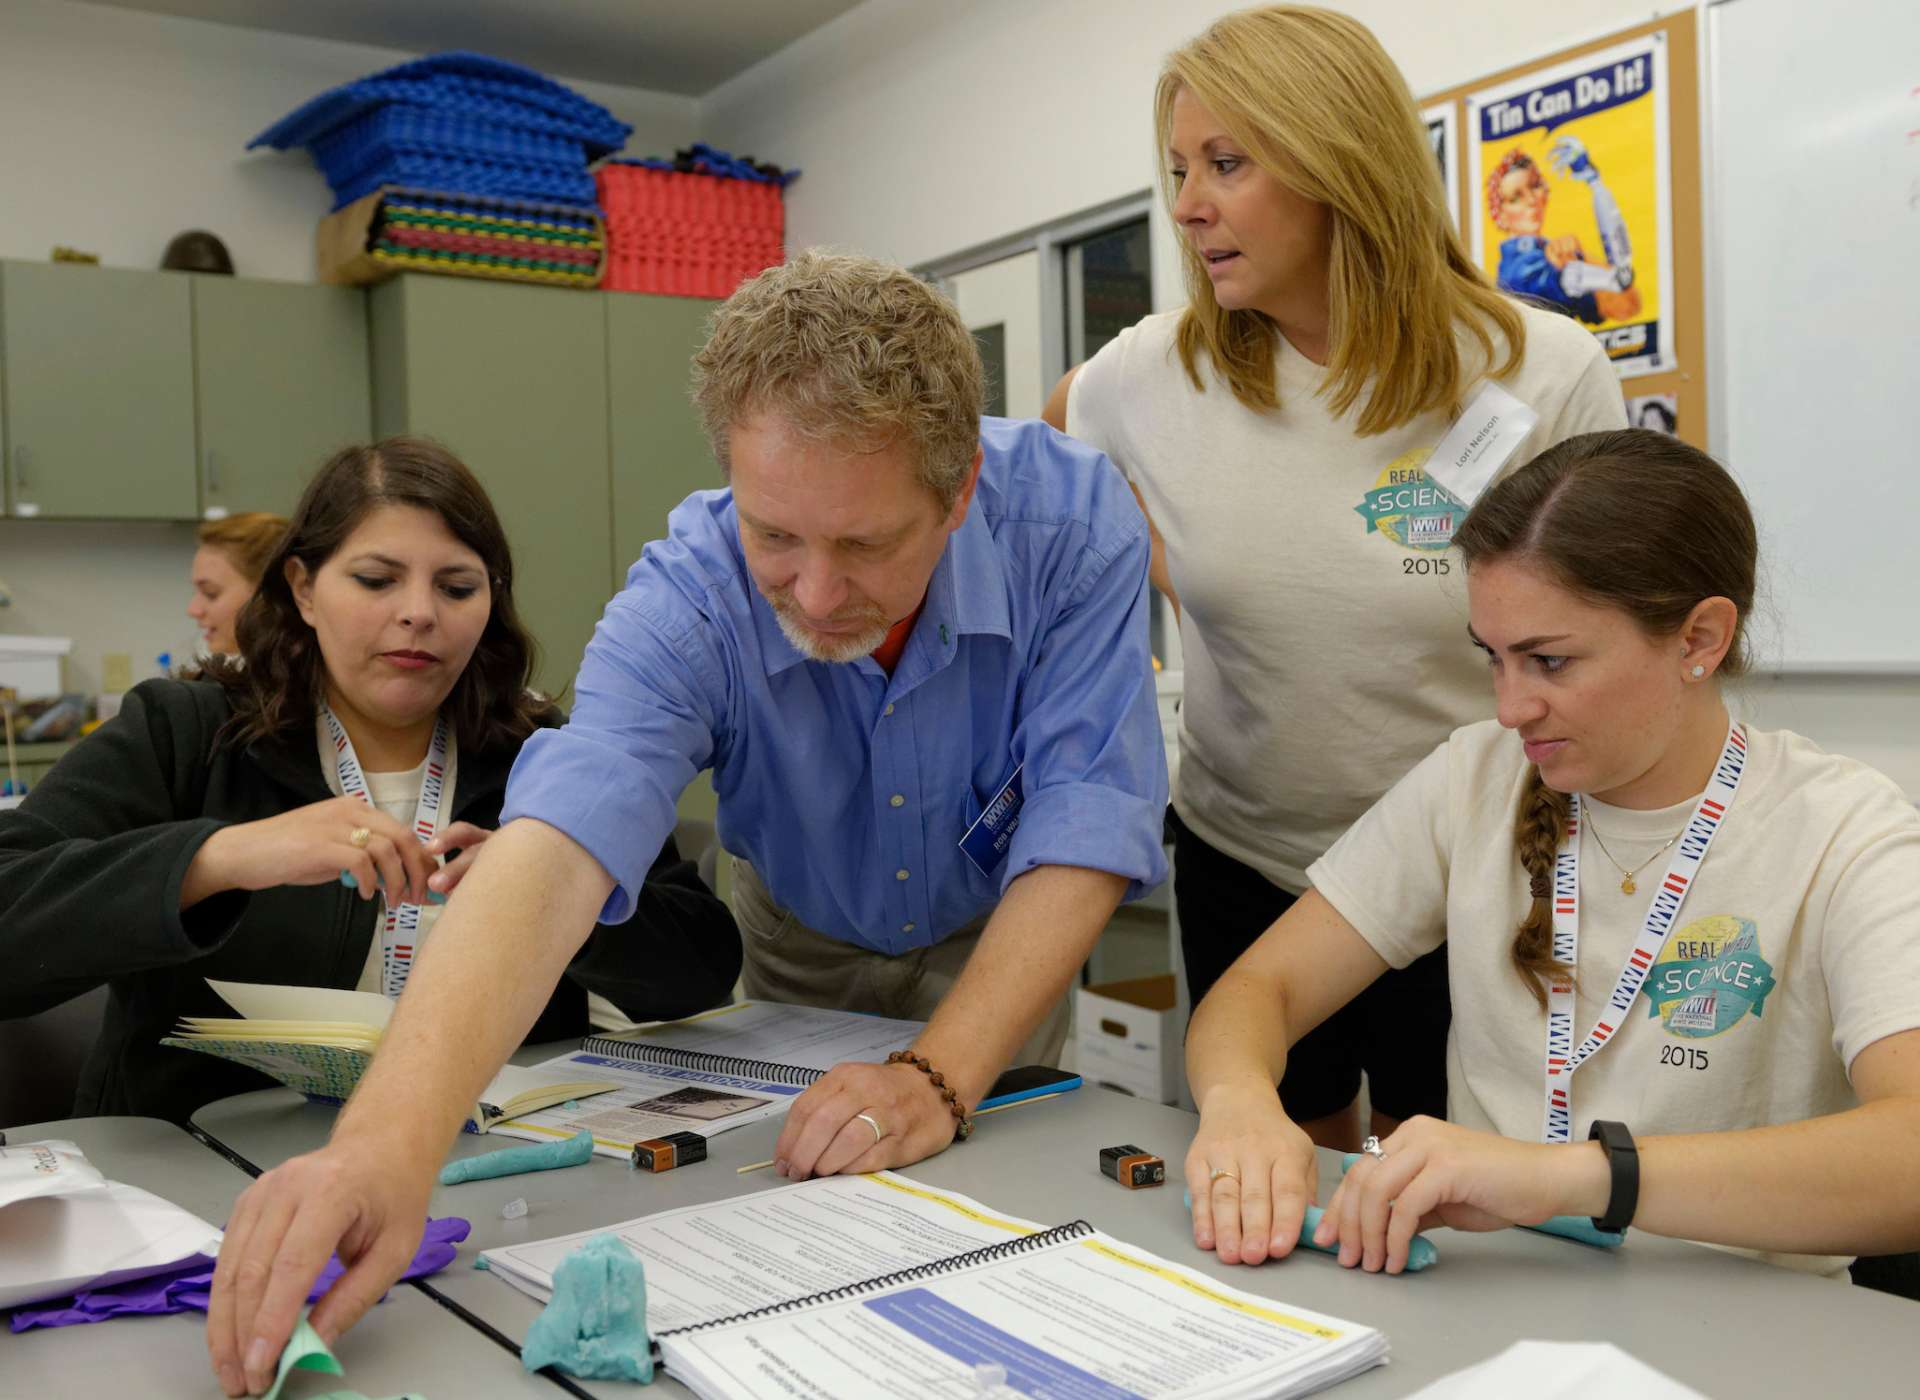 Teachers using classroom materials